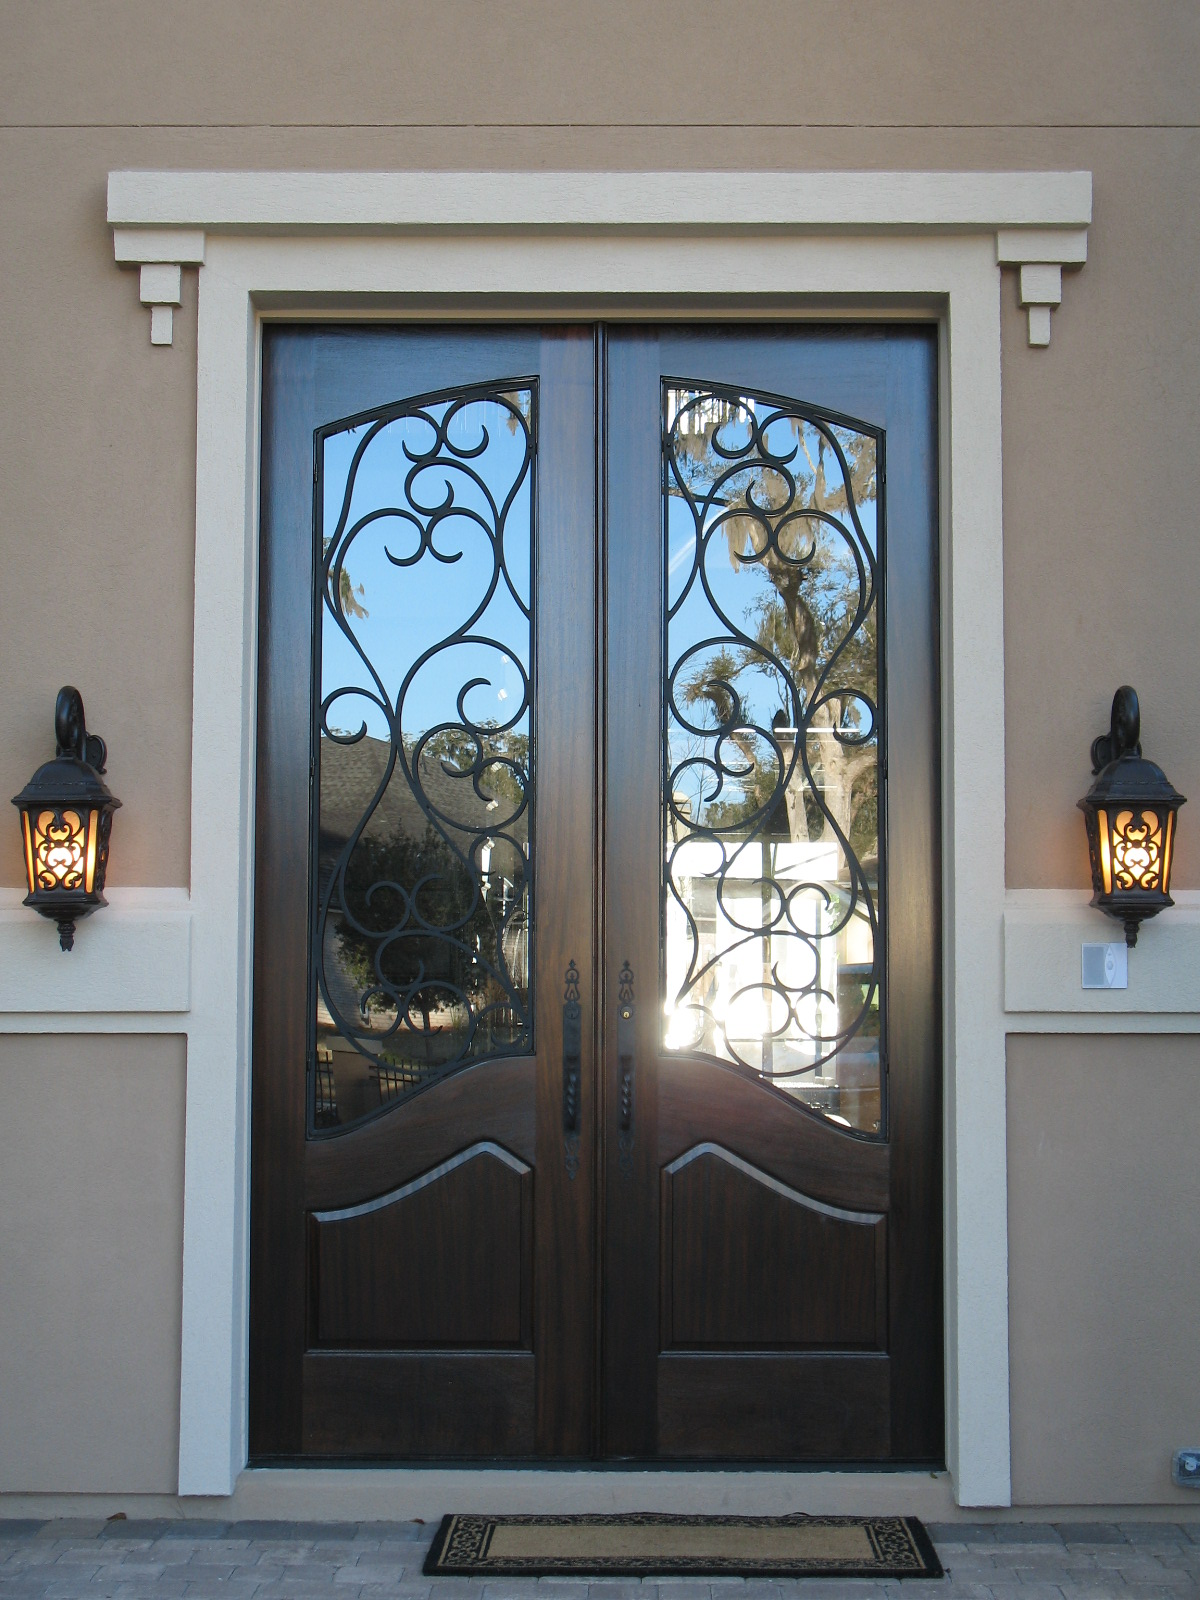 1600 #376F94 Home Entrance Door: Elegant Entry Doors wallpaper Steel Double Doors Exterior 42151200